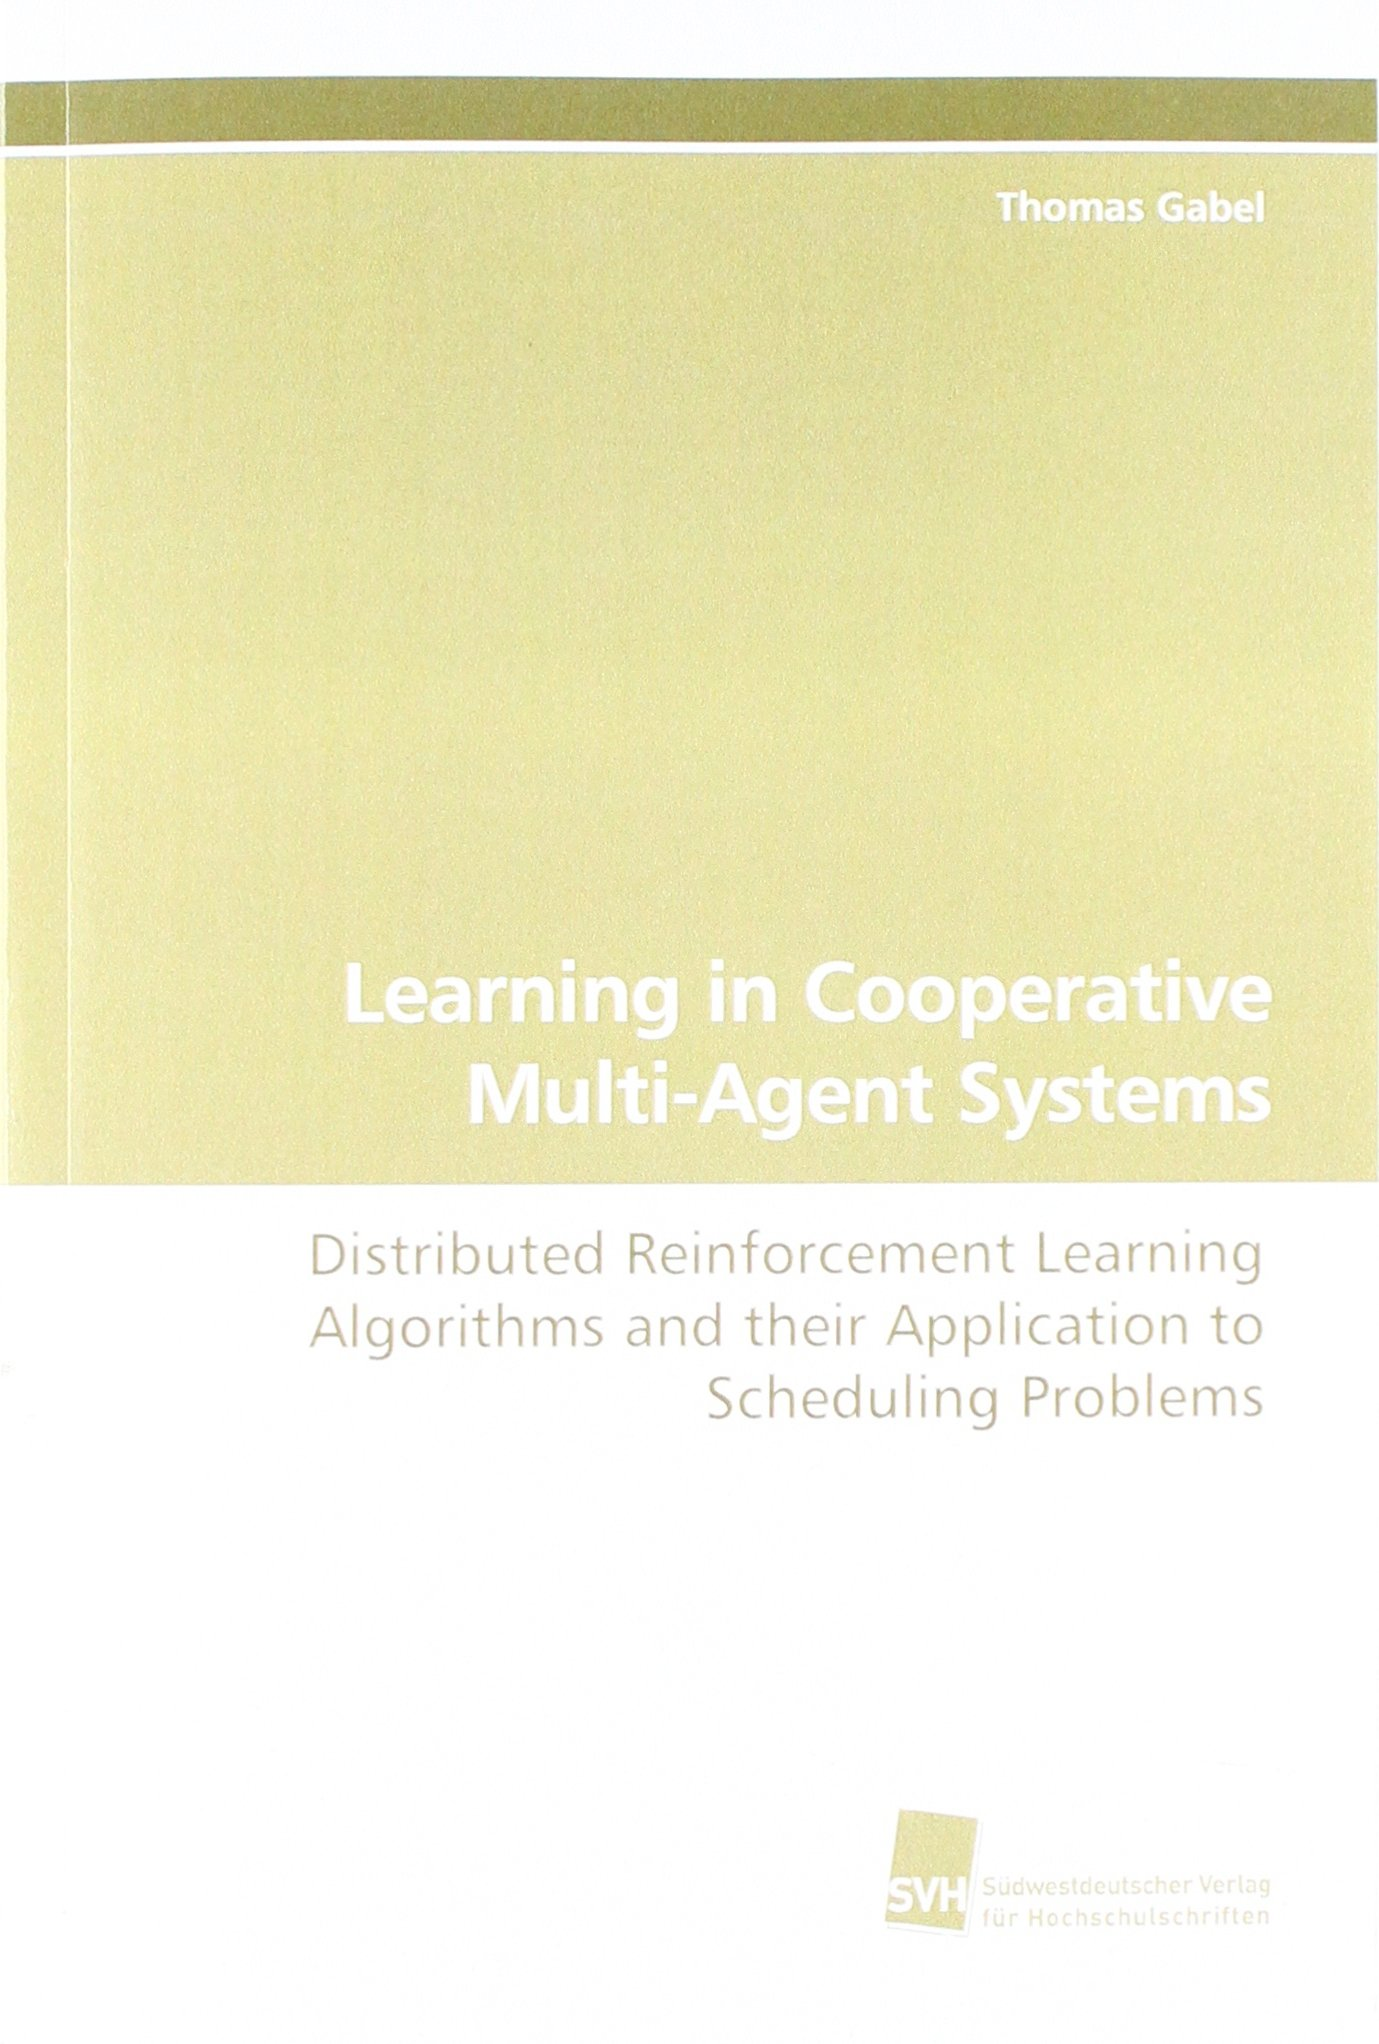 Learning in Cooperative Multi-Agent Systems: Distributed